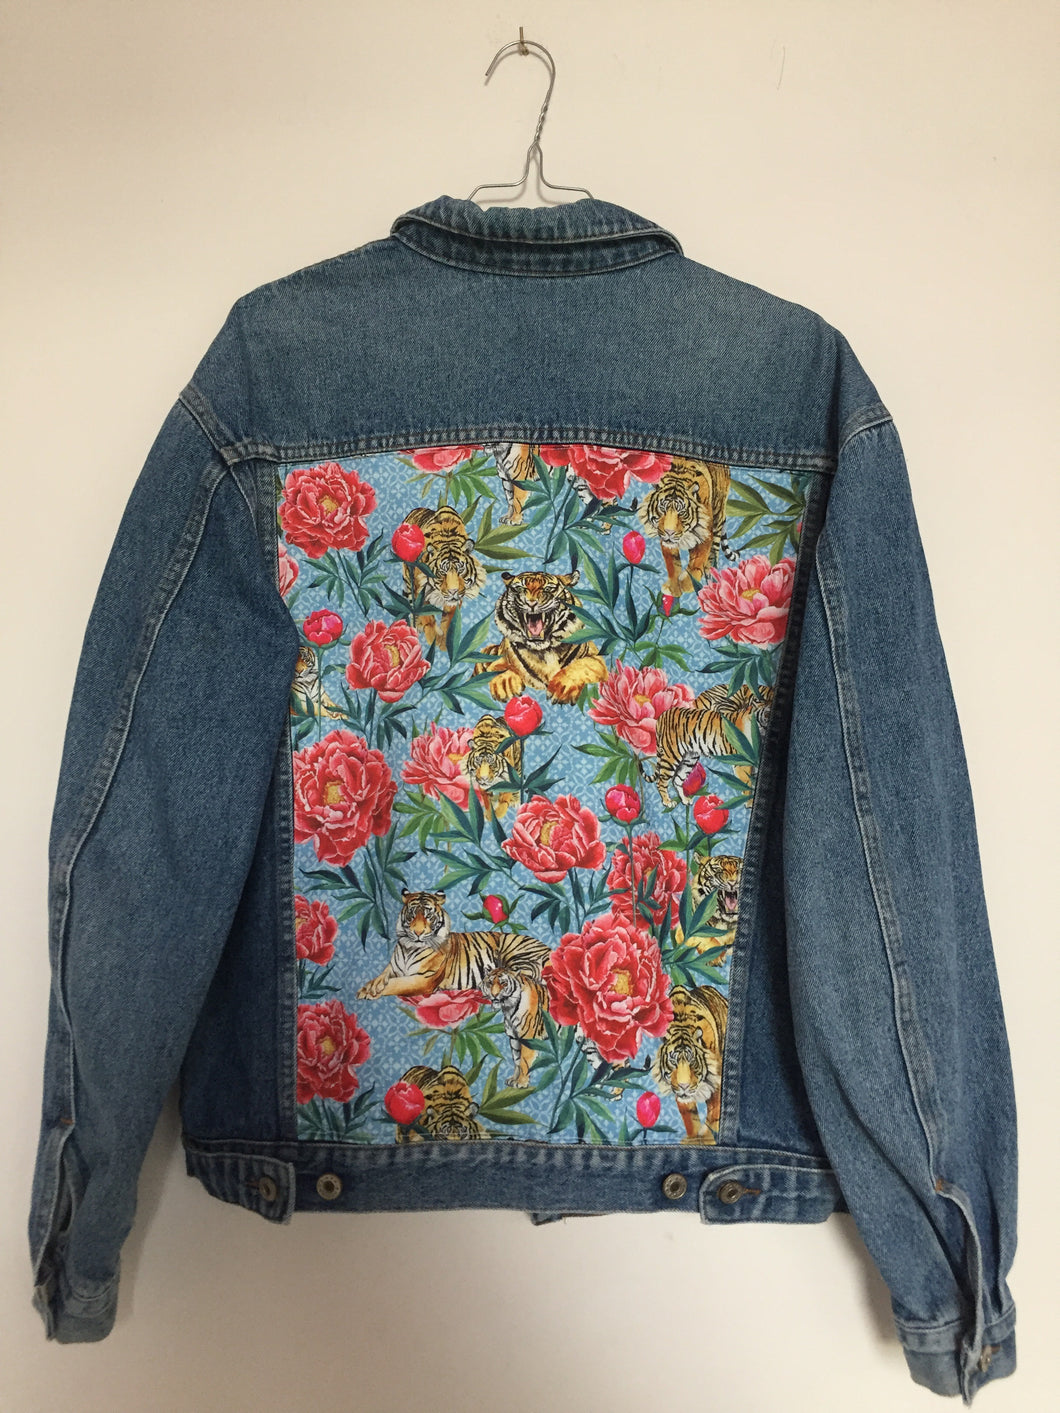 'Anthony's' denim jacket, Tigers and Peonies design